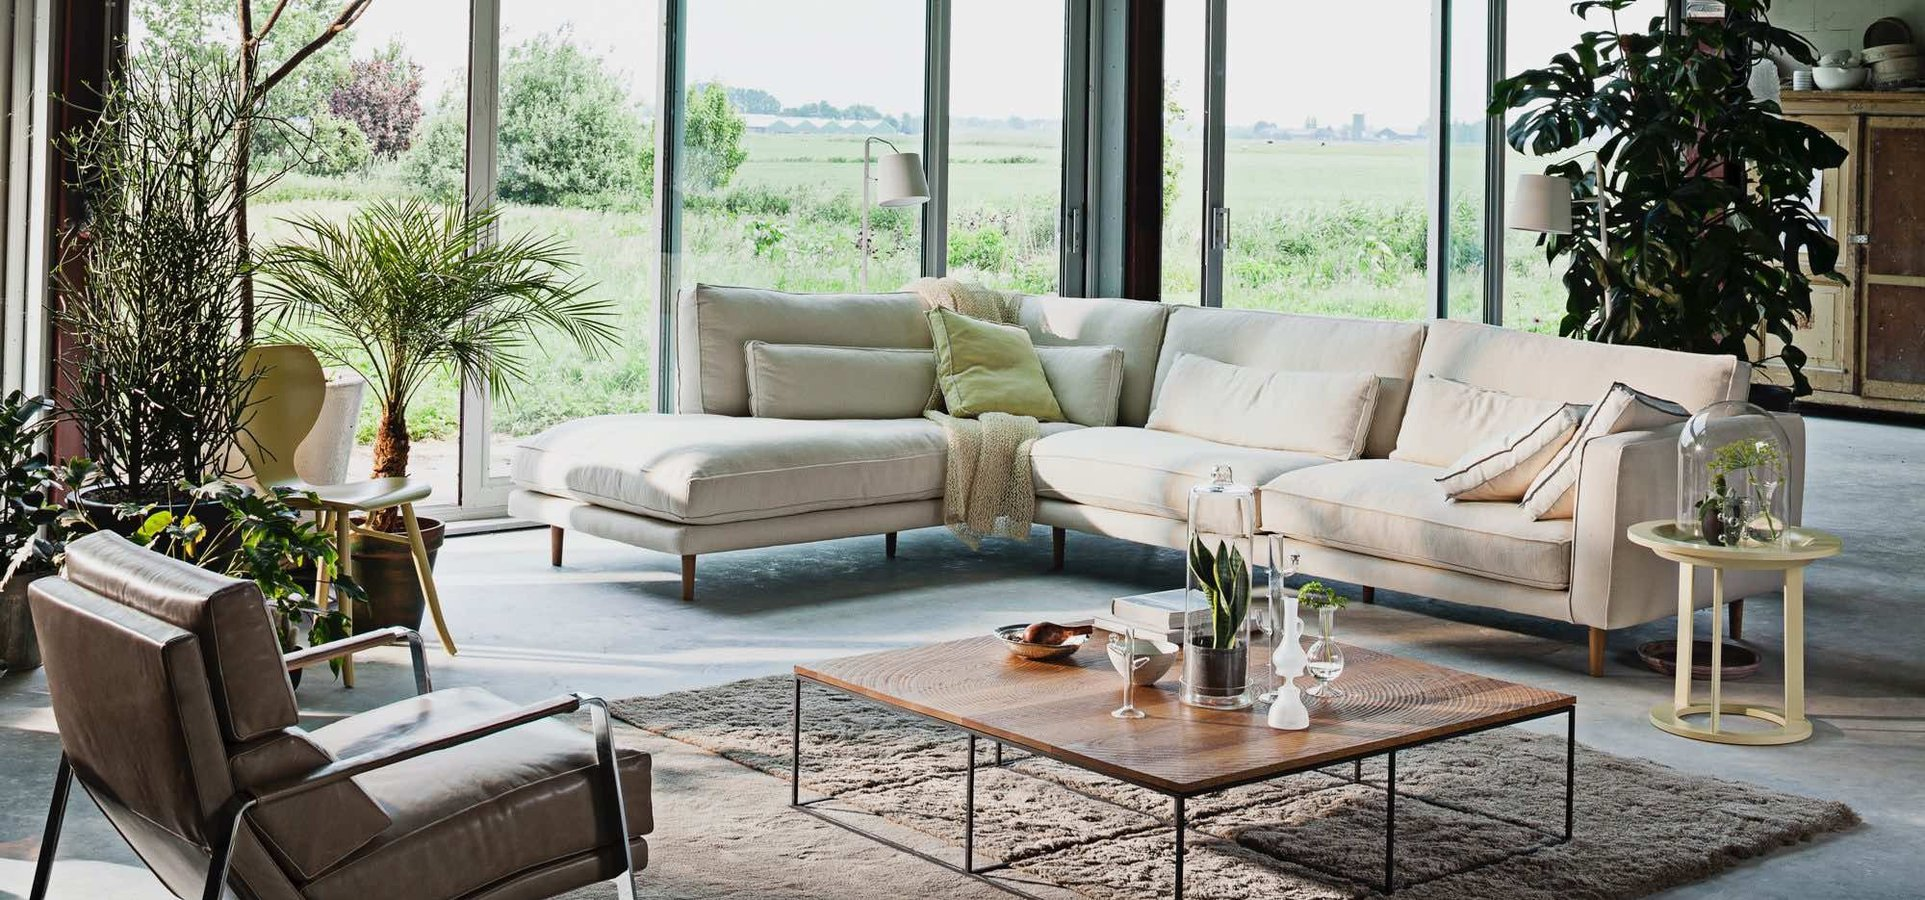 The Pleasure Sofa By Linteloo Lab Has Been Inspired By The Scandinavian  Lifestyle But With A Whiff Of Easy Living Translated To Our Time: Sober, ...